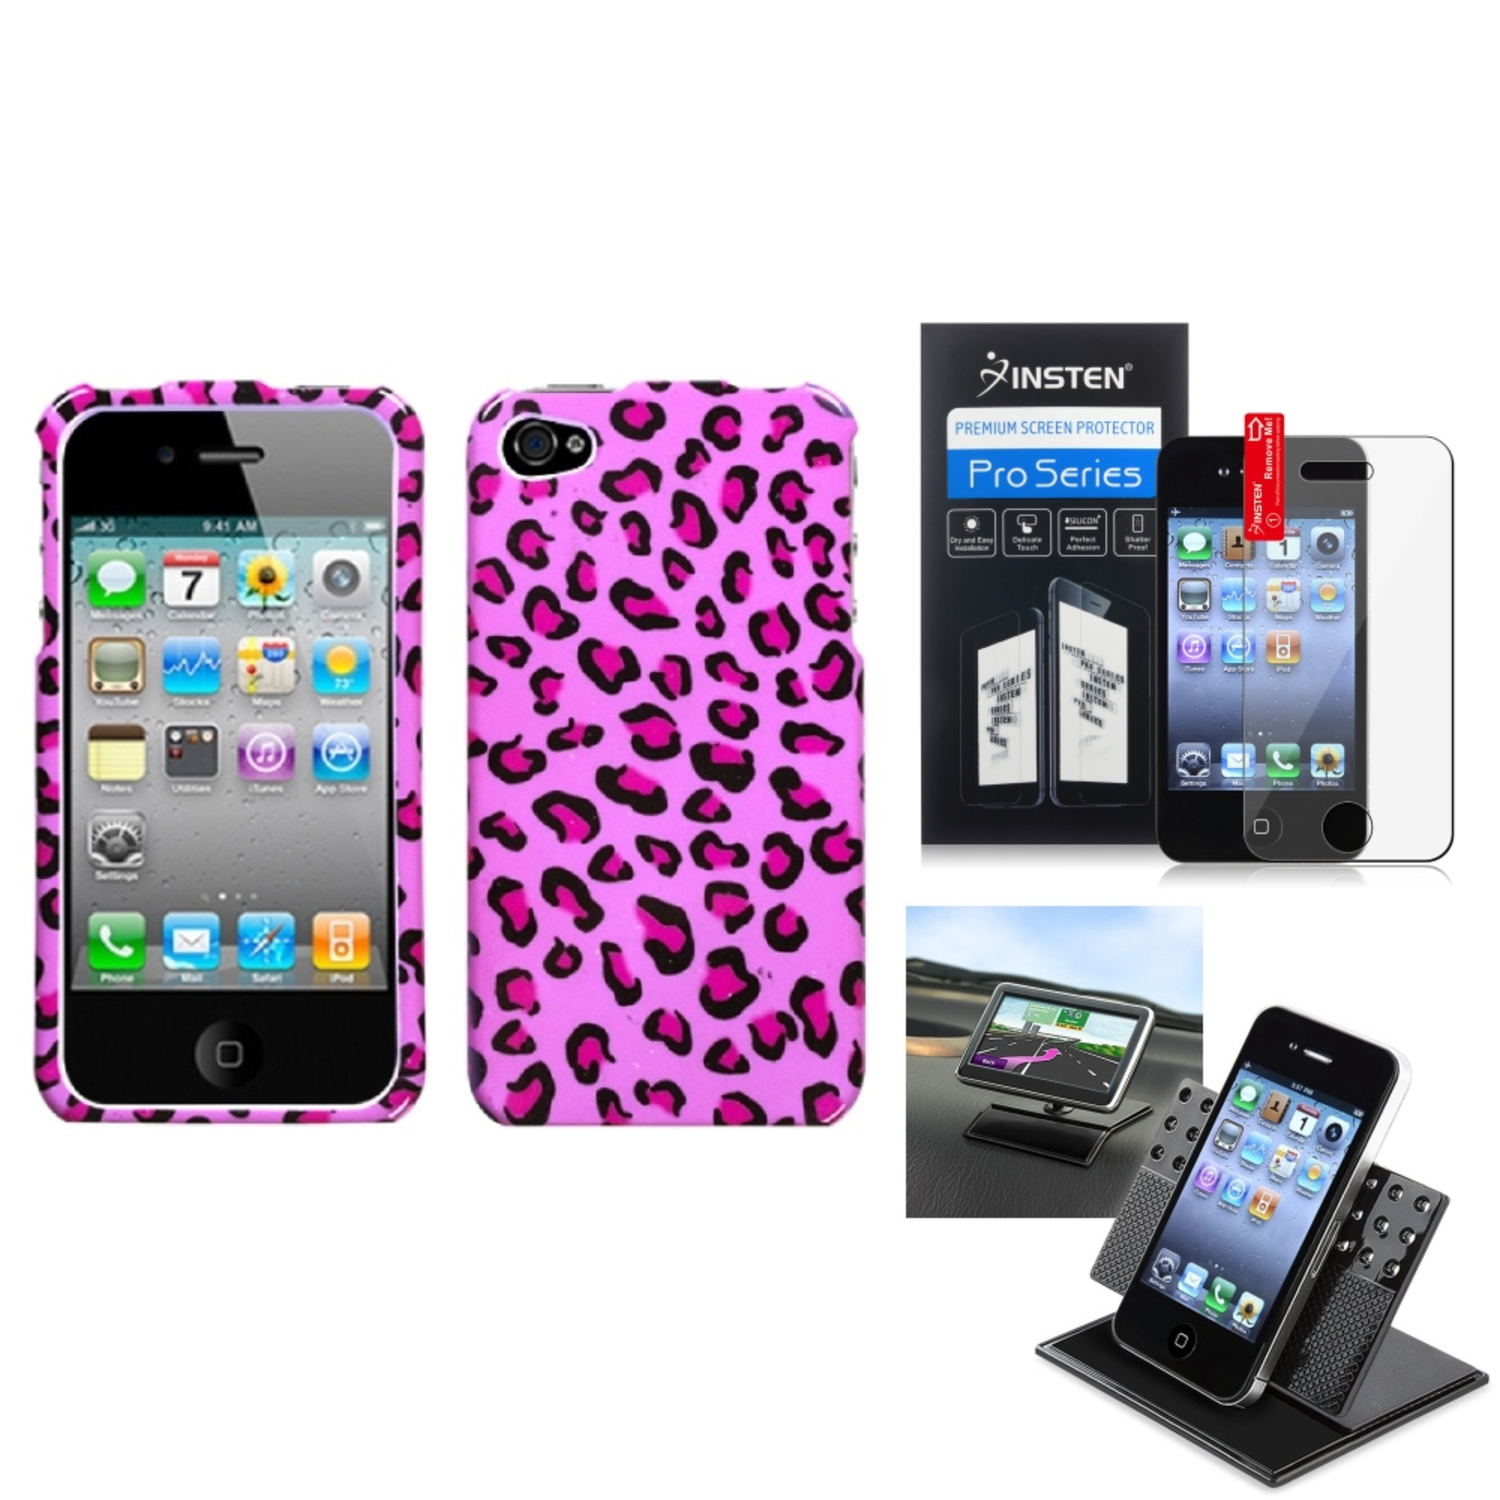 Insten Film Holder Pink Leopard Skin Phone Case Cover For APPLE iPhone 4S/4